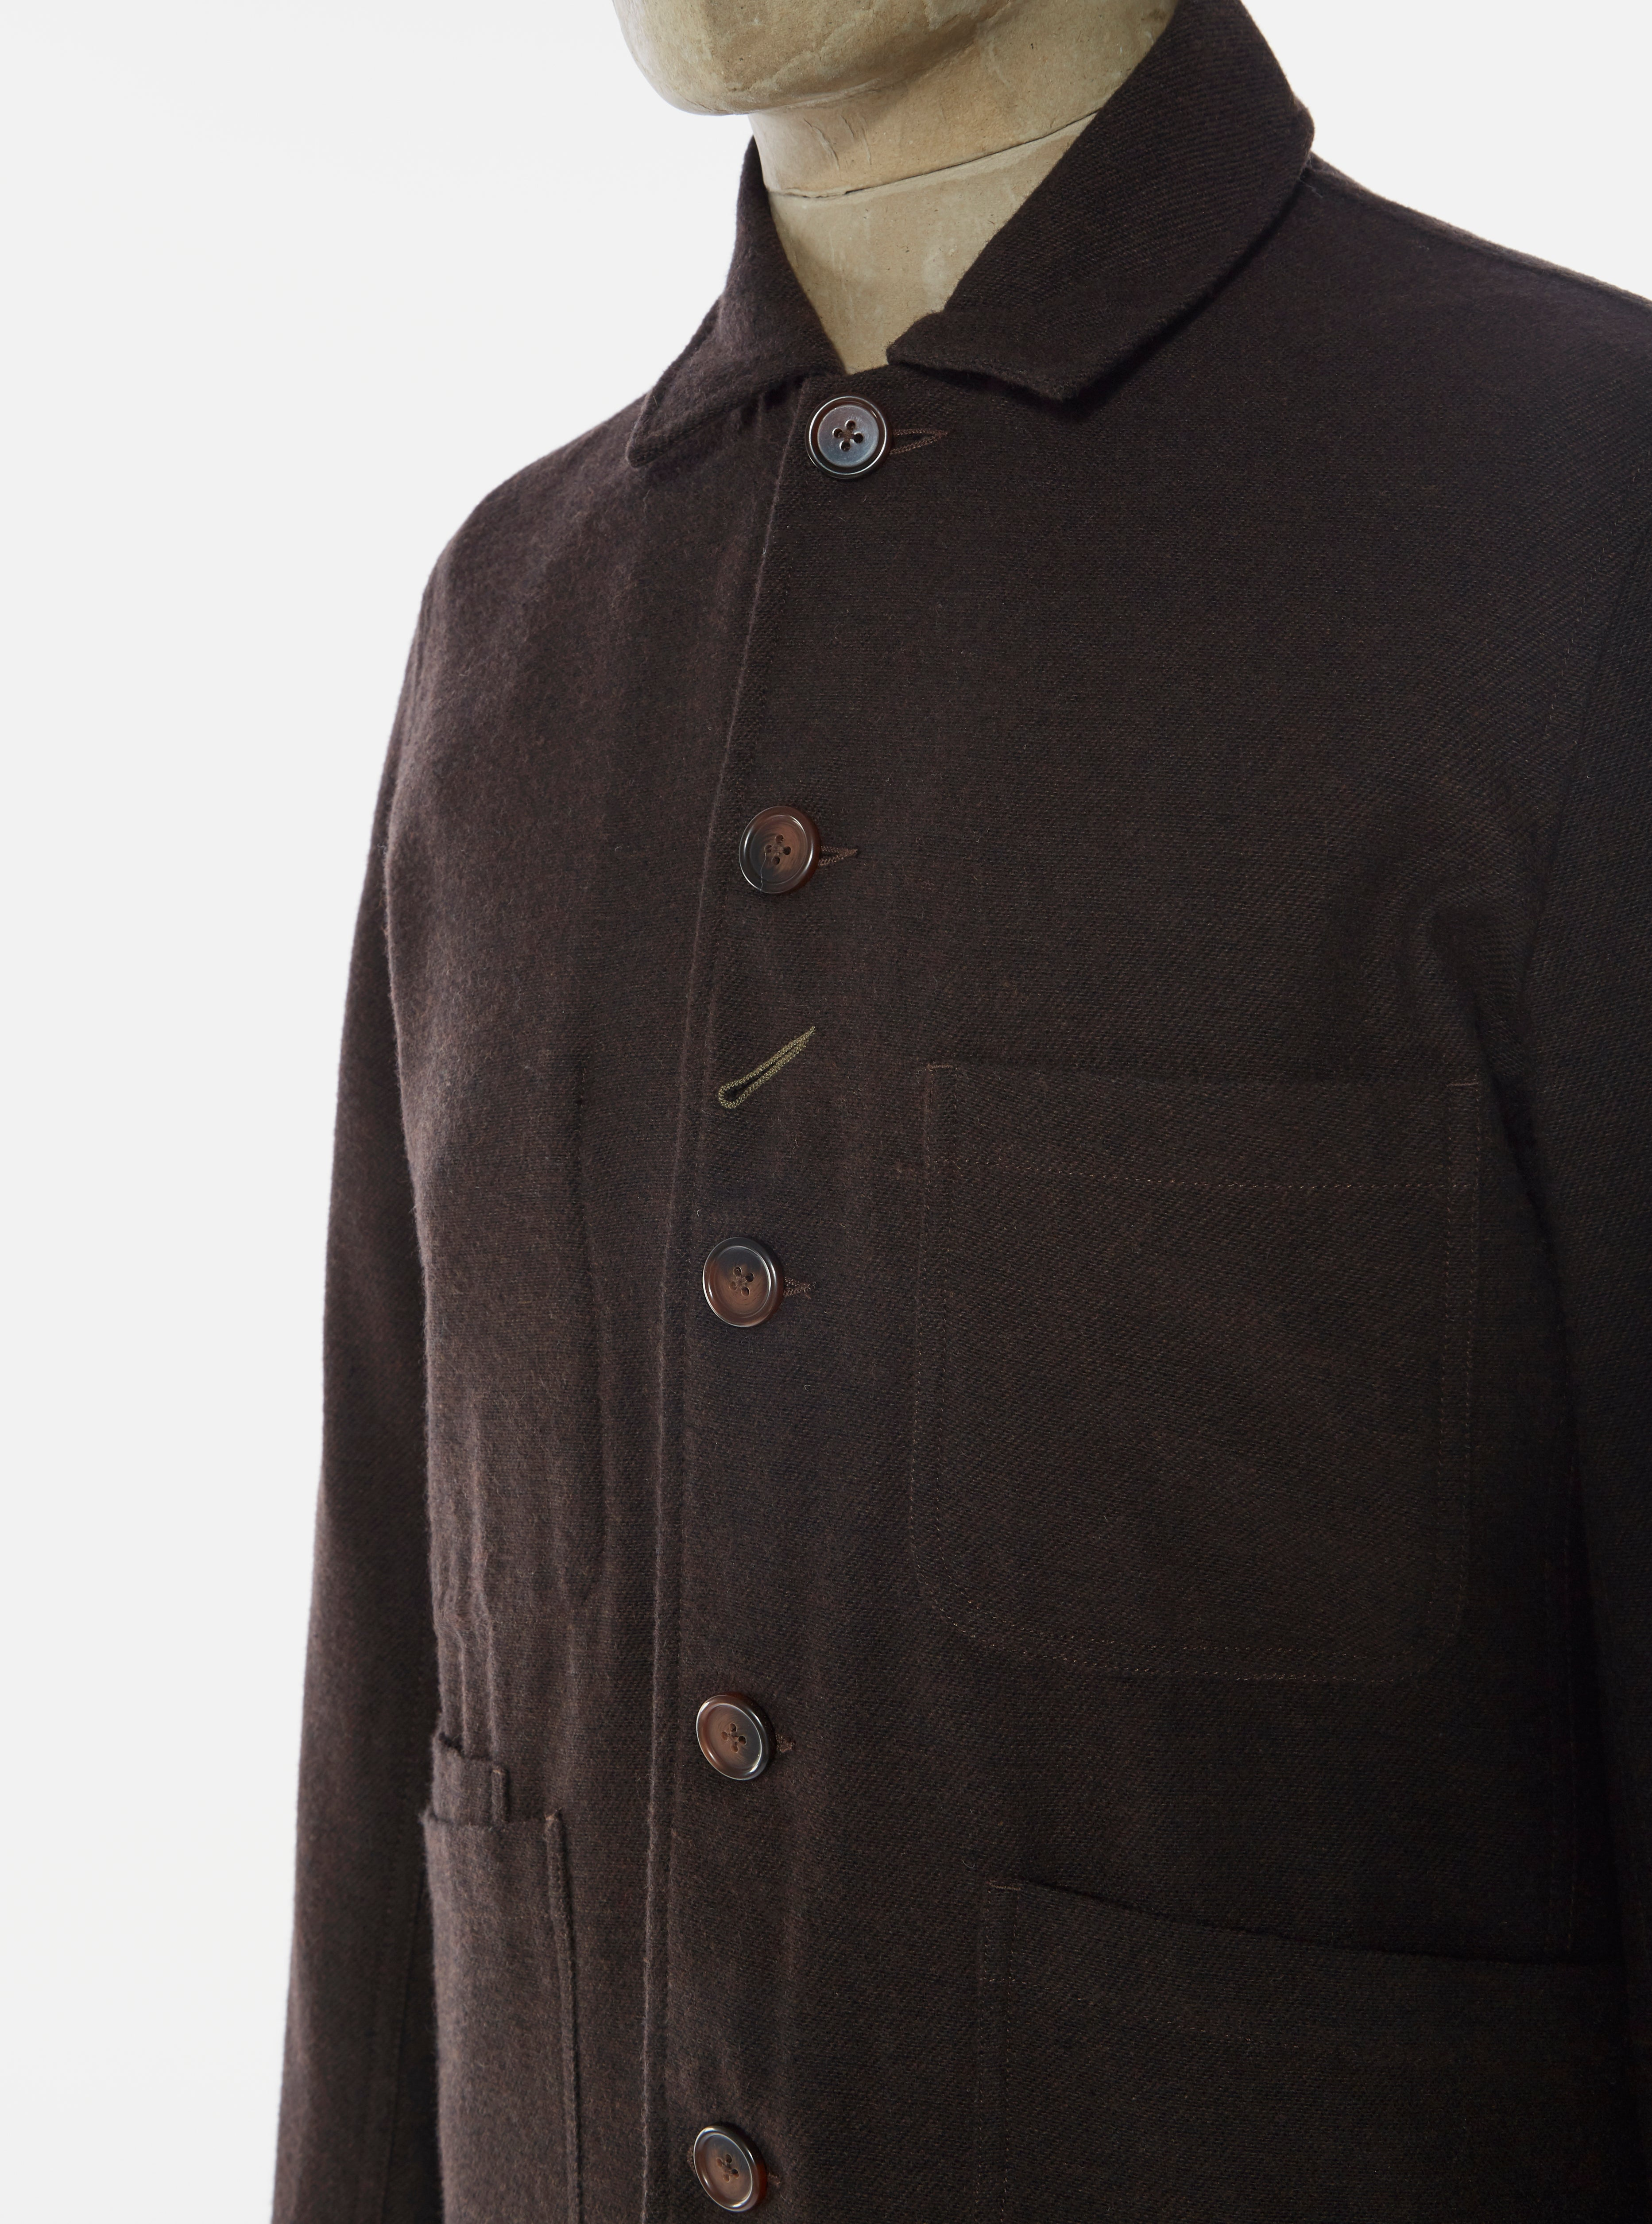 Universal Works Bakers Jacket in Chocolate Wool Marl II